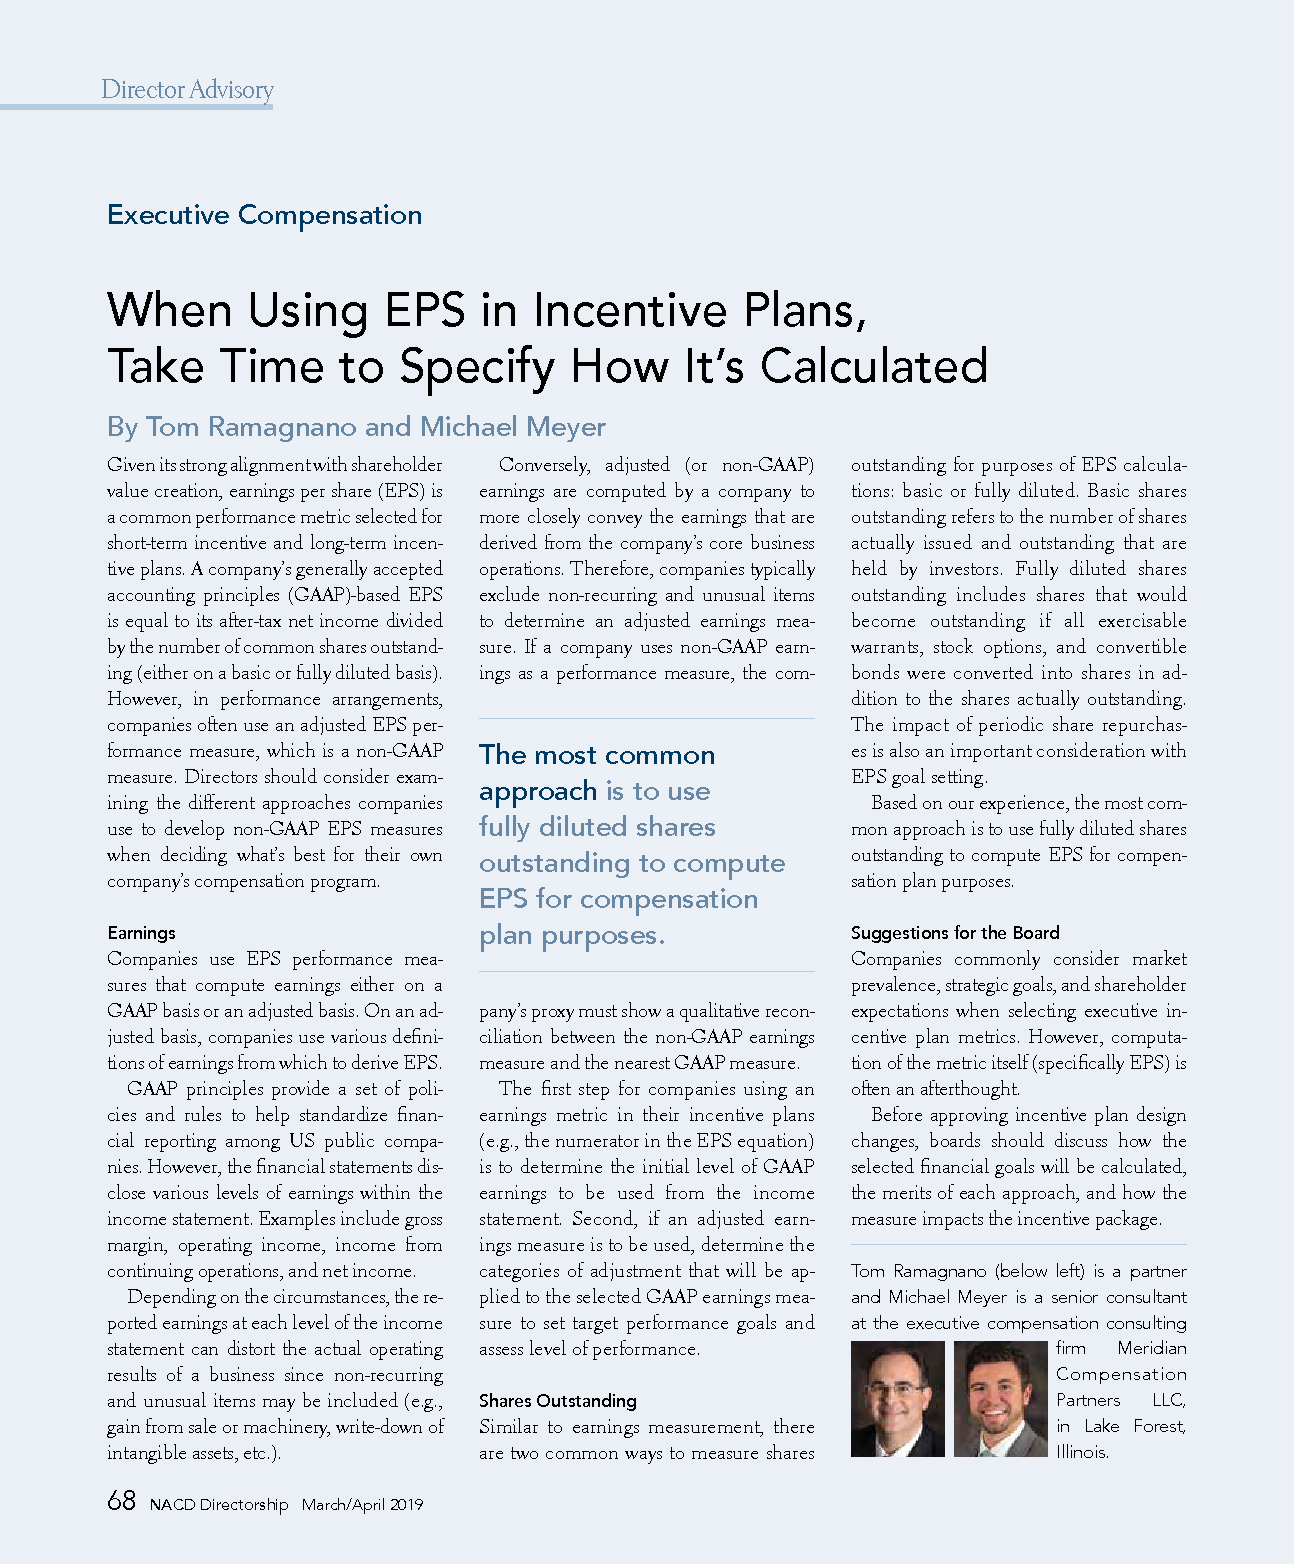 When Using EPS in Incentive Plans, Take Time to Specify How It's Calculated (PDF)